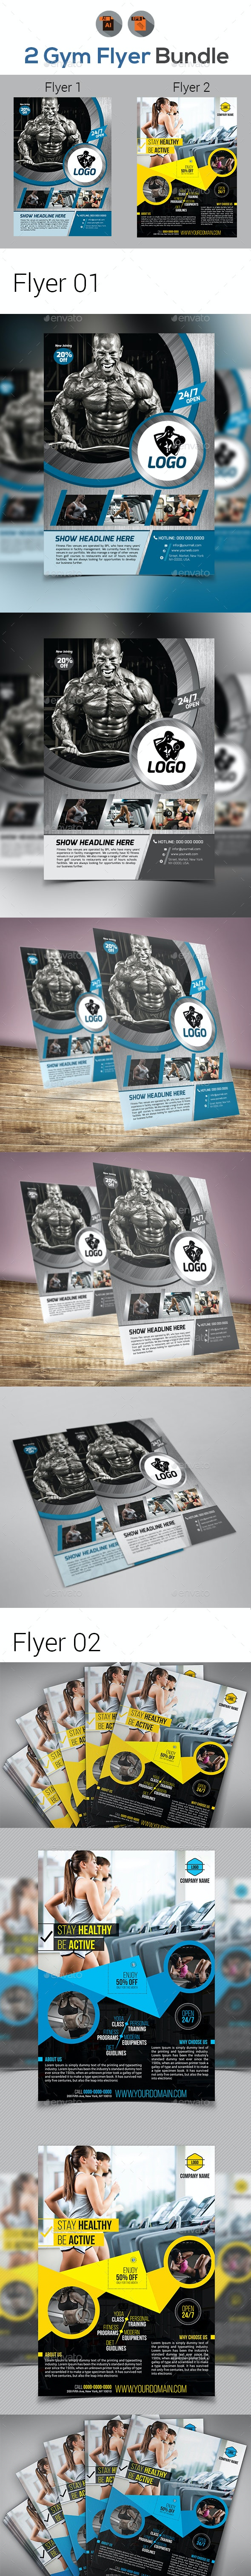 Fitness & Gym Flyers Templates - Sports Events